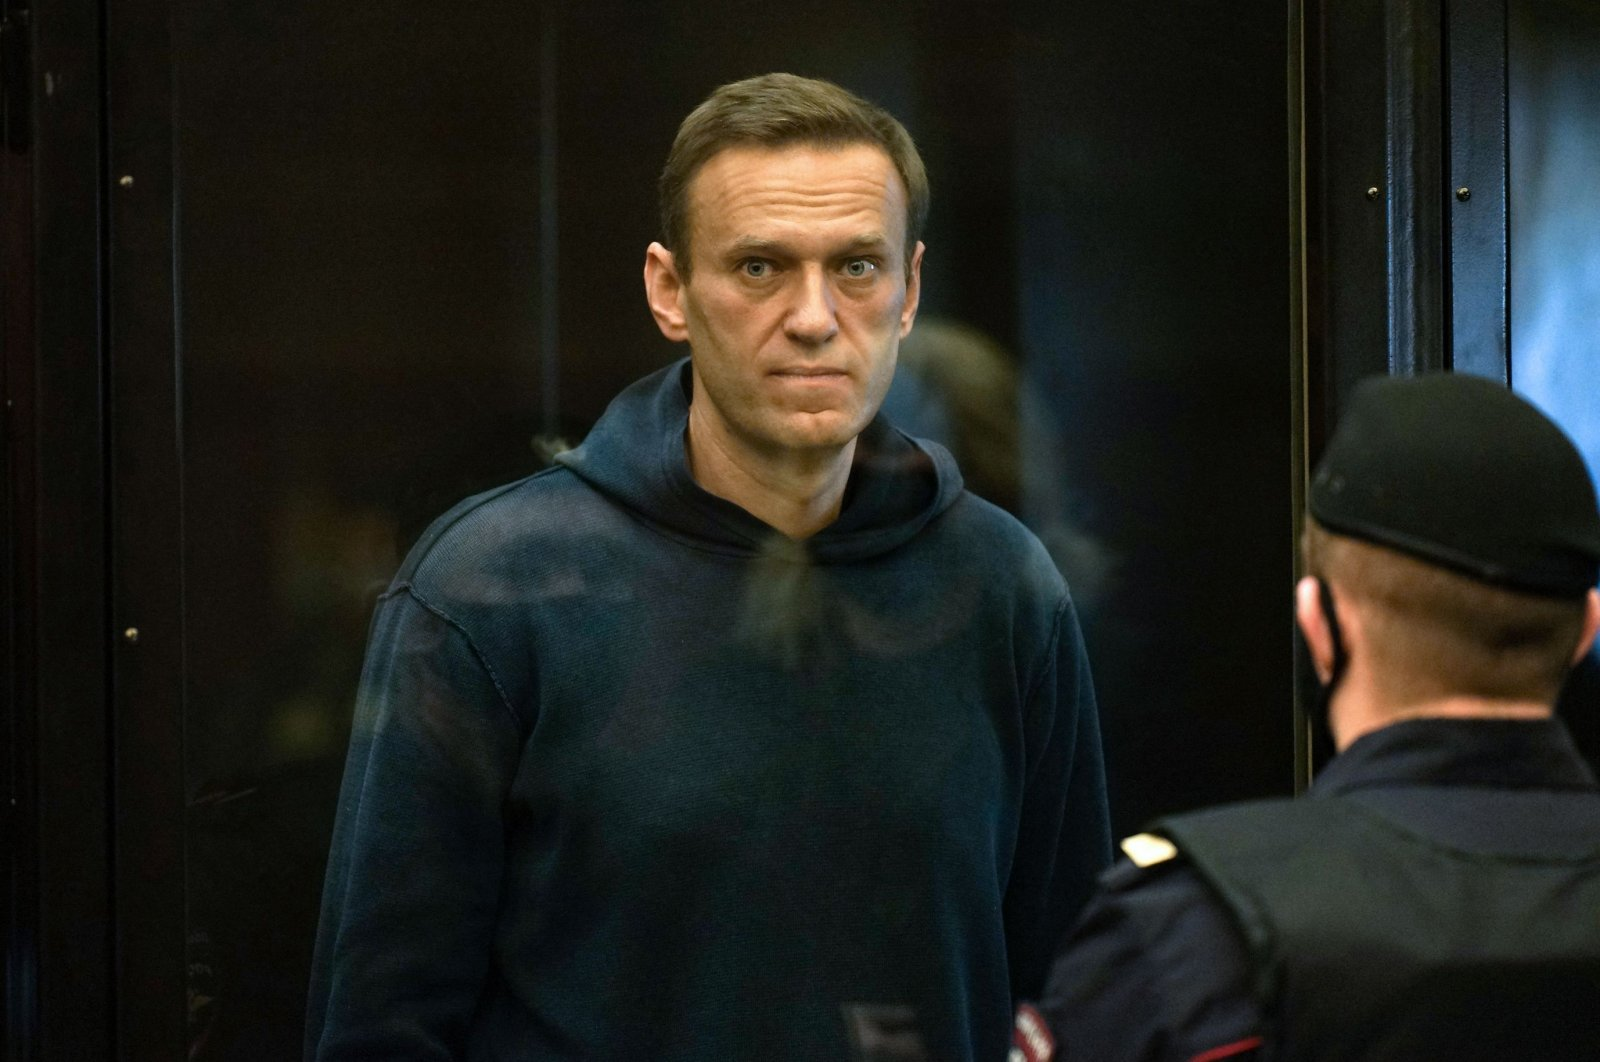 Russian opposition leader Alexei Navalny, charged with violating the terms of a 2014 suspended sentence for embezzlement, stands inside a glass cell during a court hearing in Moscow, Russia, Feb. 2, 2021. (AP)